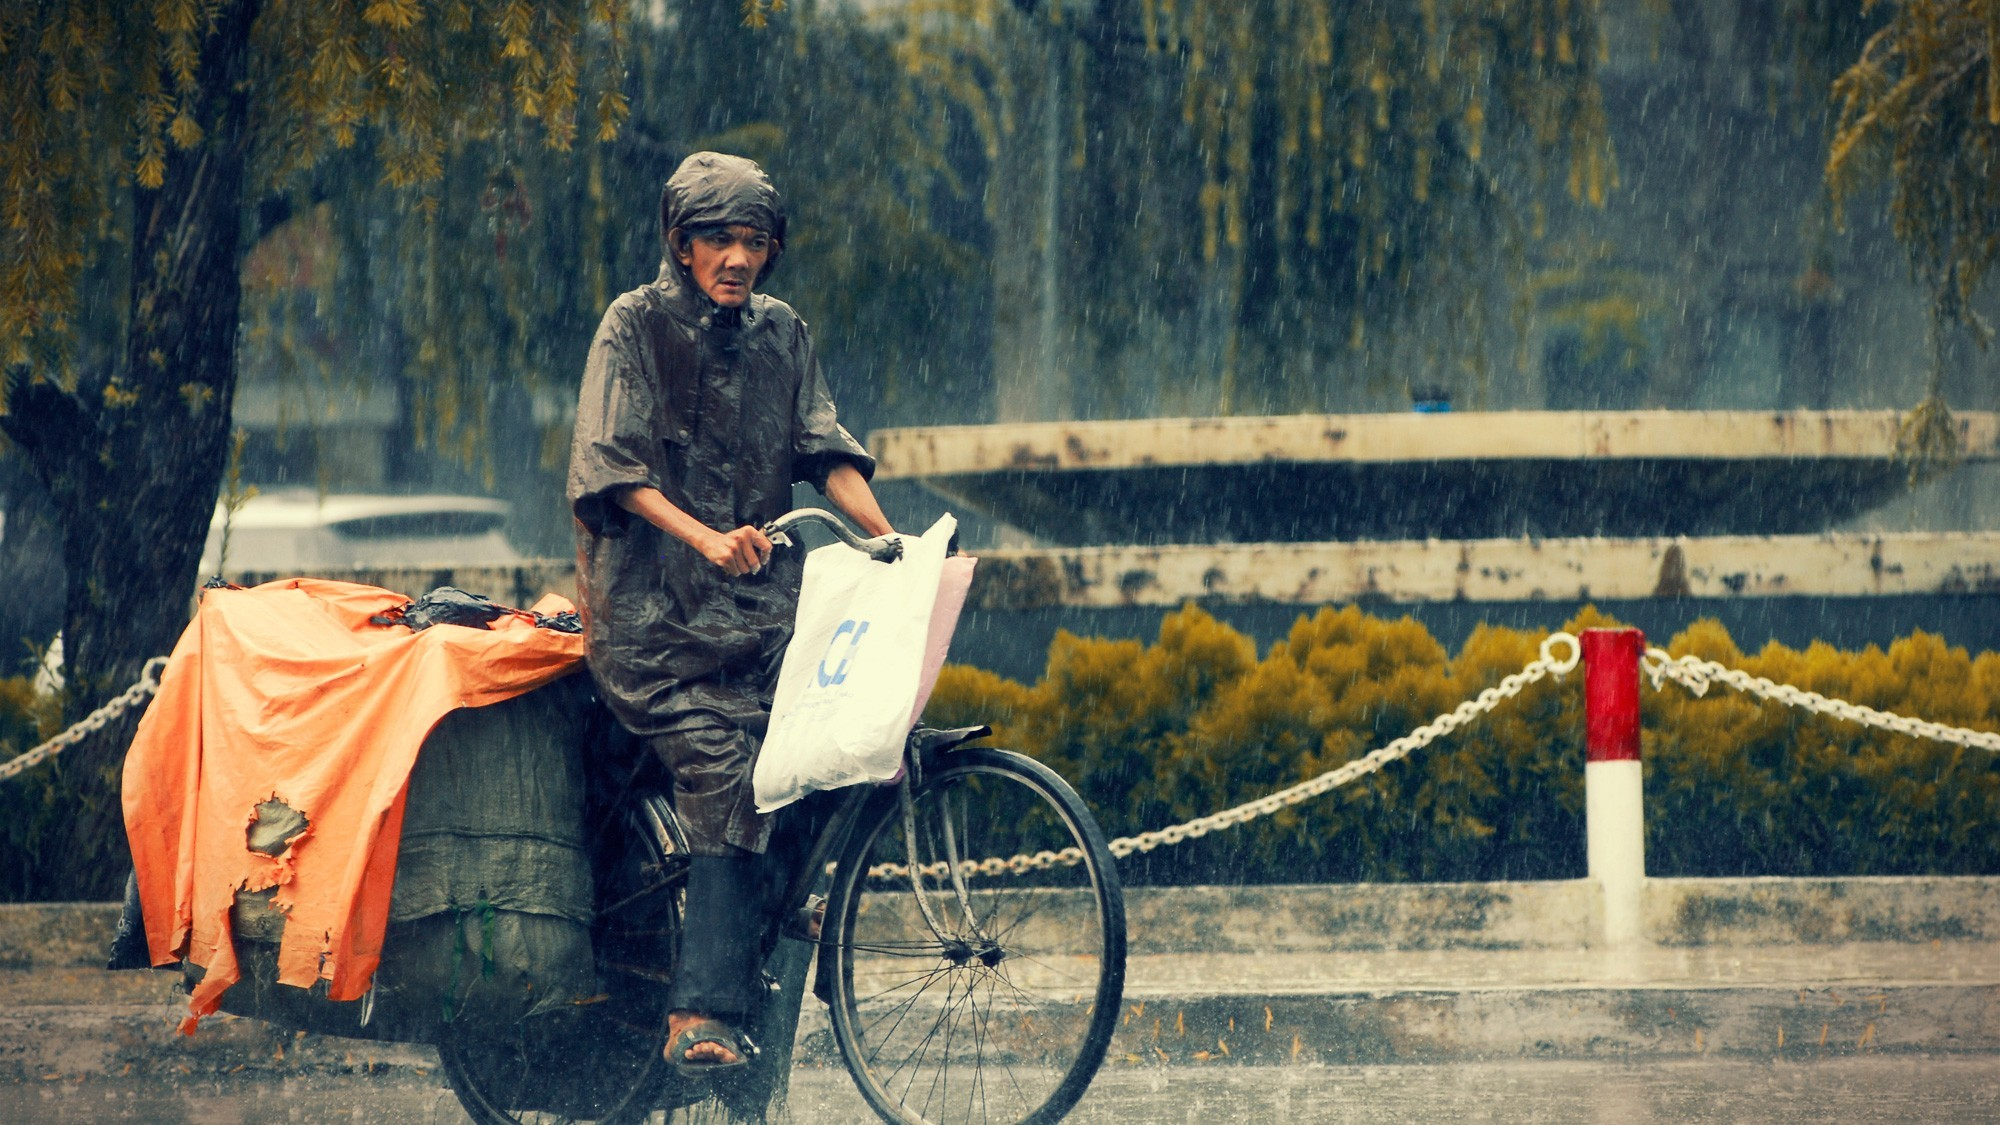 cityscapes rain Bicycles Viet HD Wallpaper